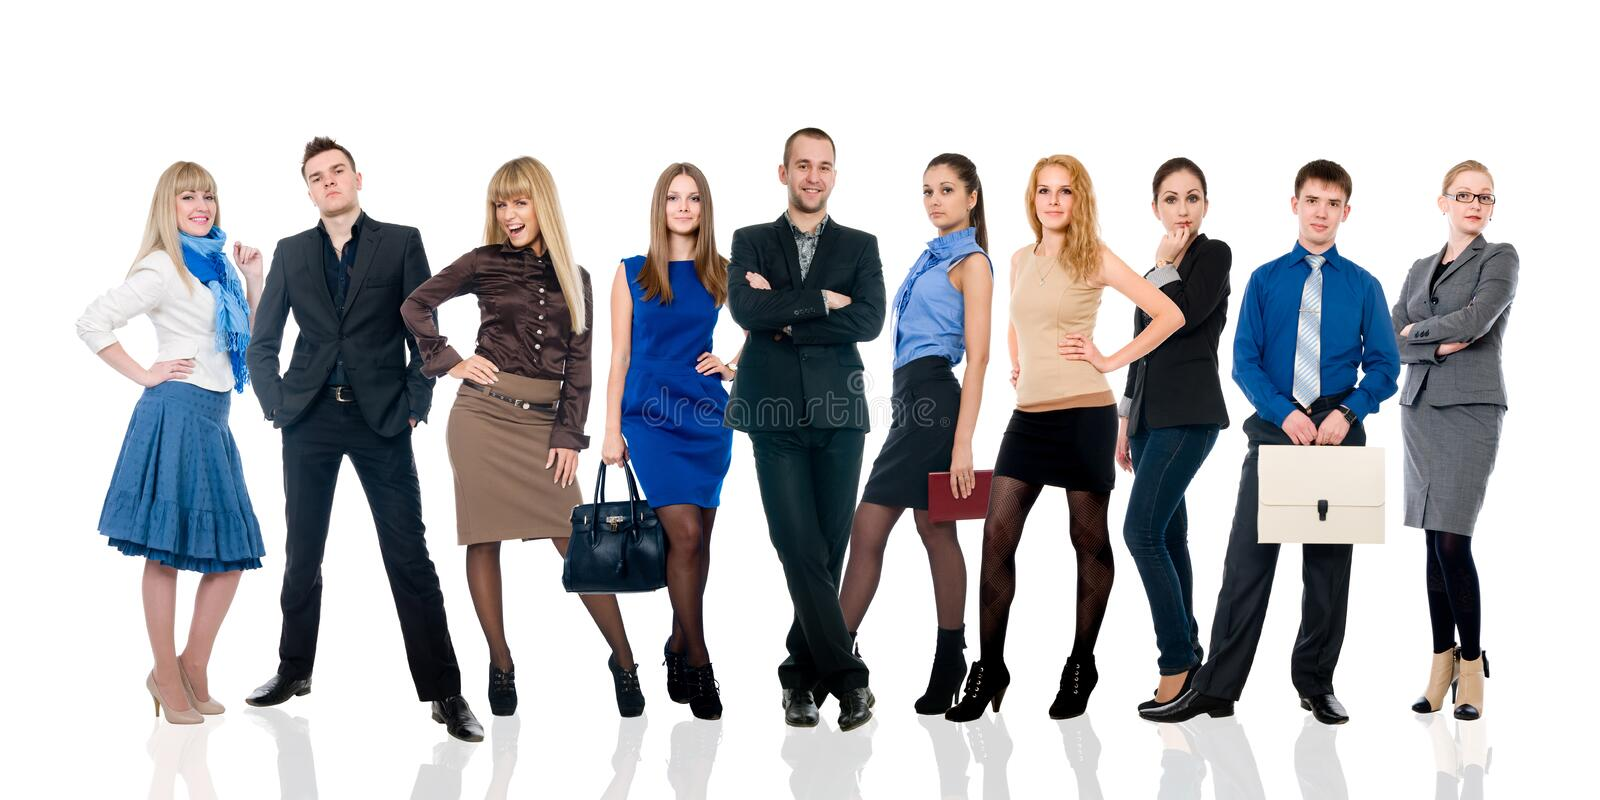 Collage of several business people in different poses. royalty free stock photos